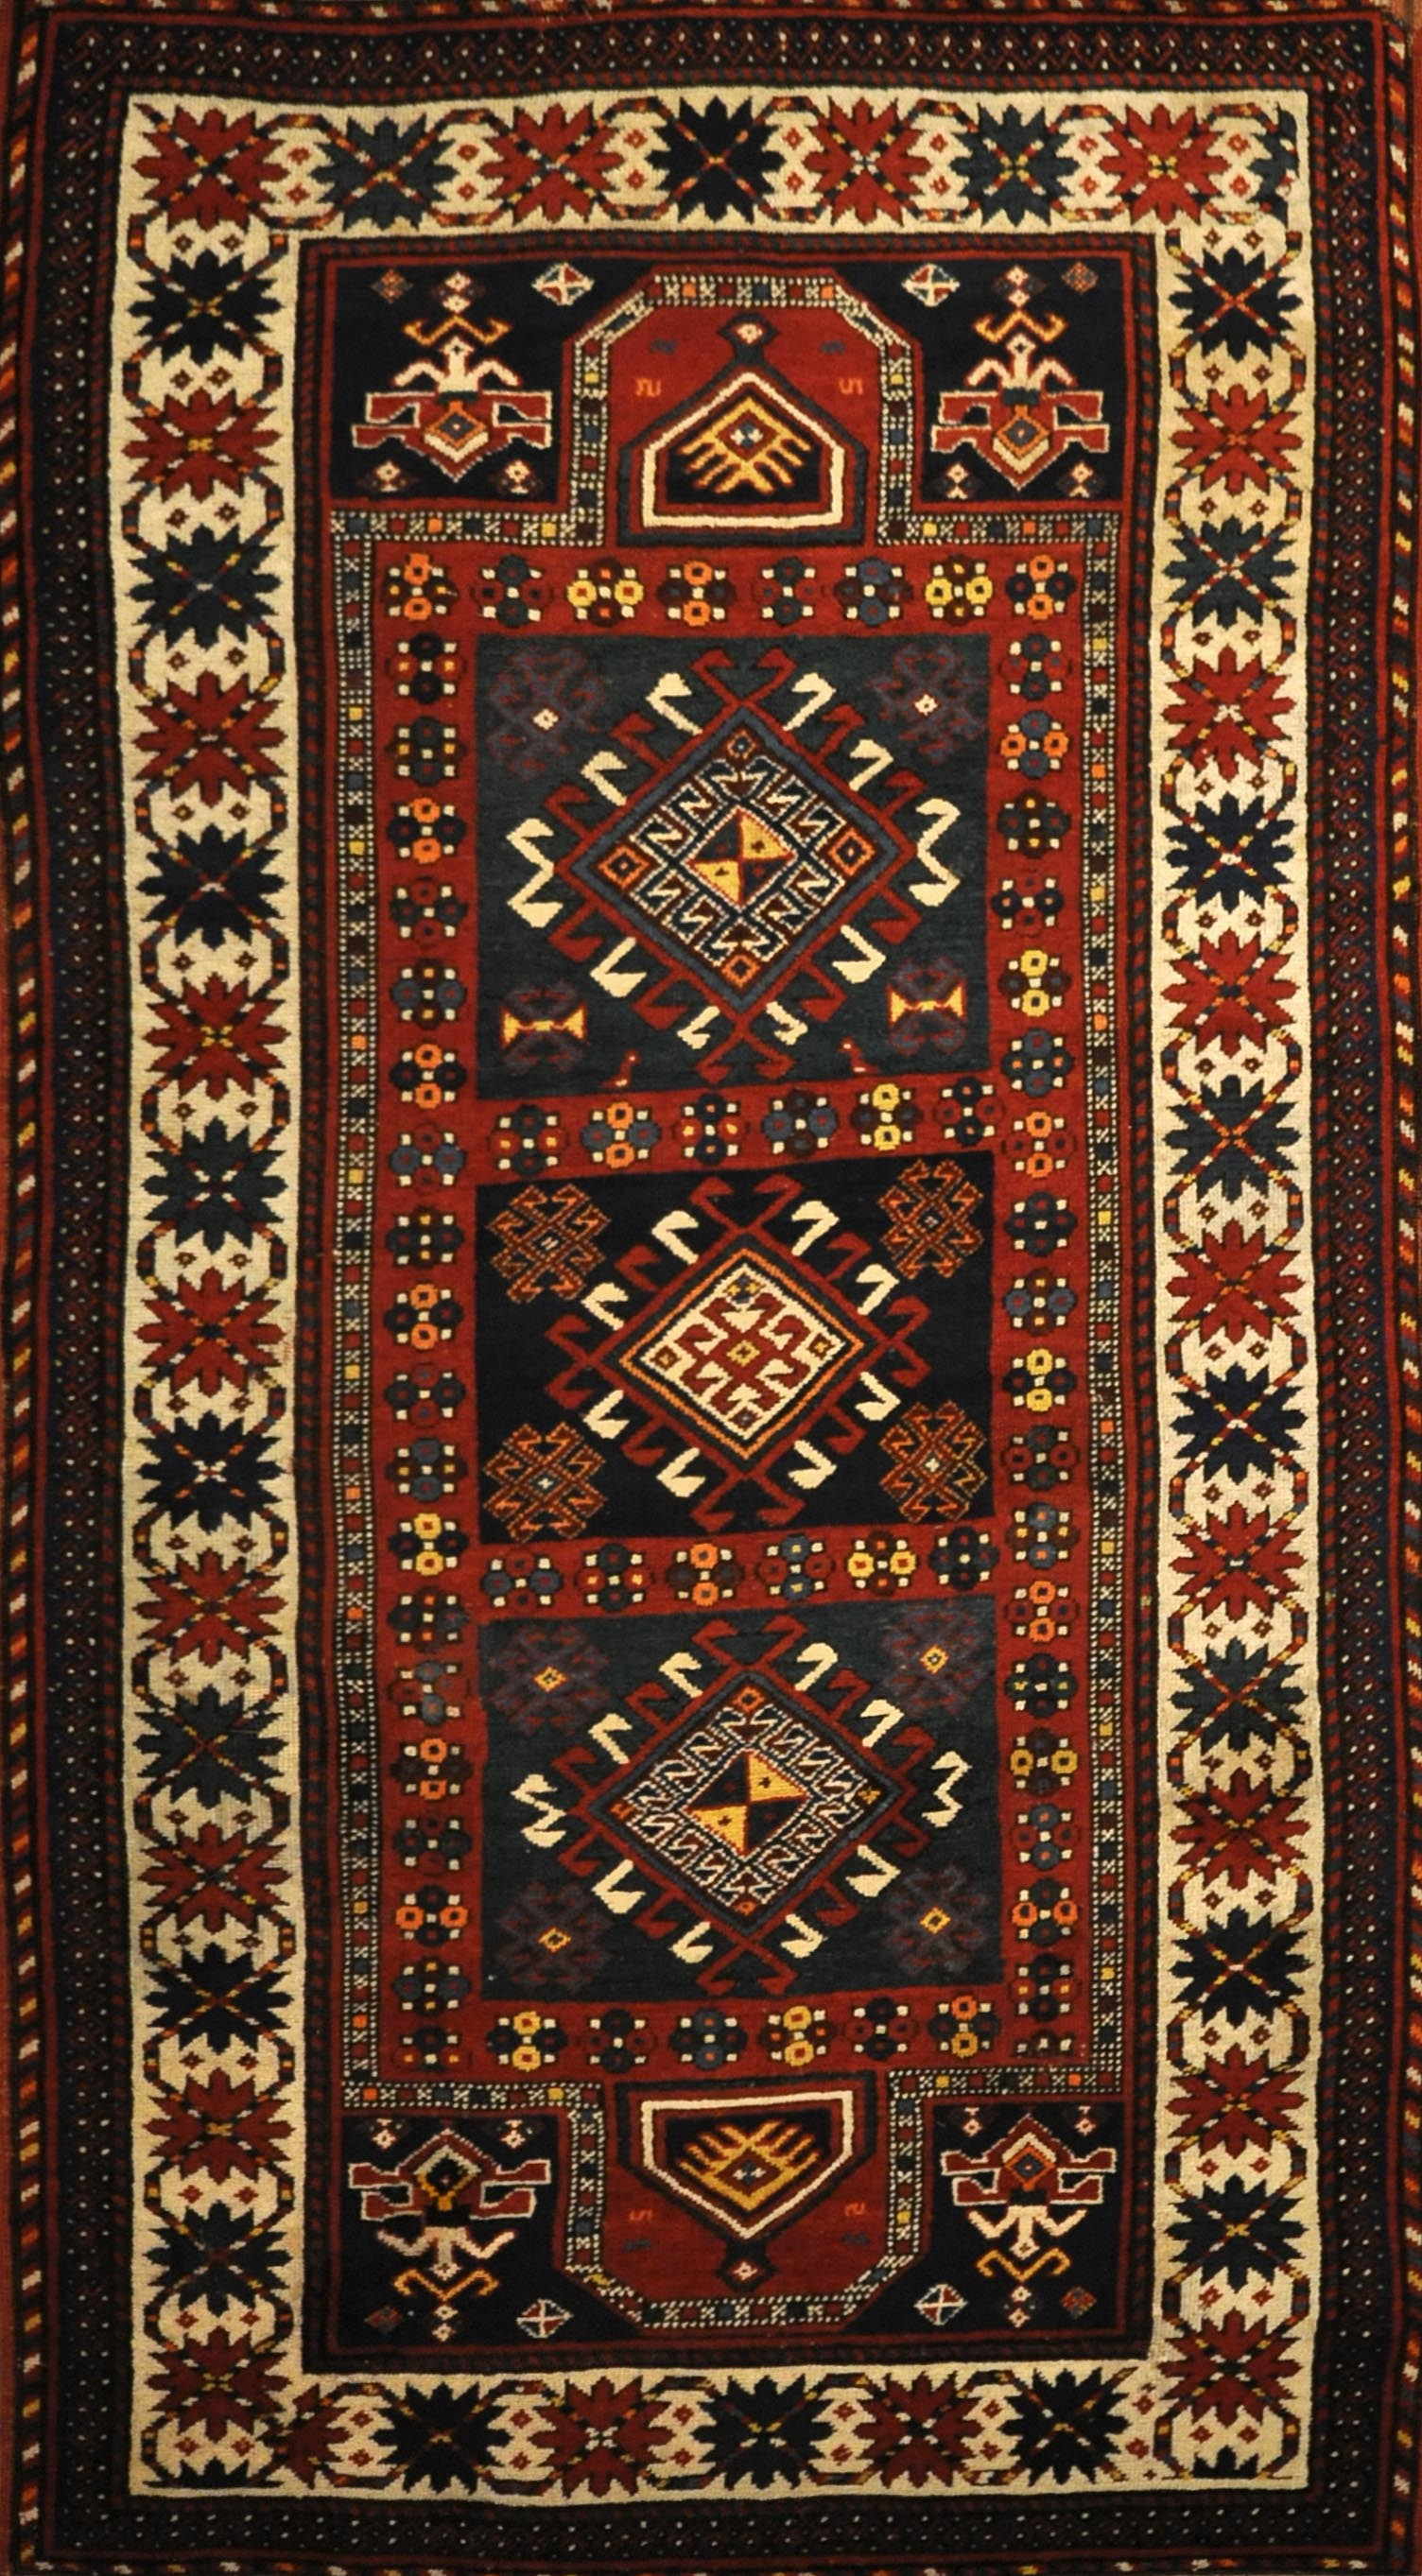 Antique Kazak Double Prayer Rug Santa Barbara Design